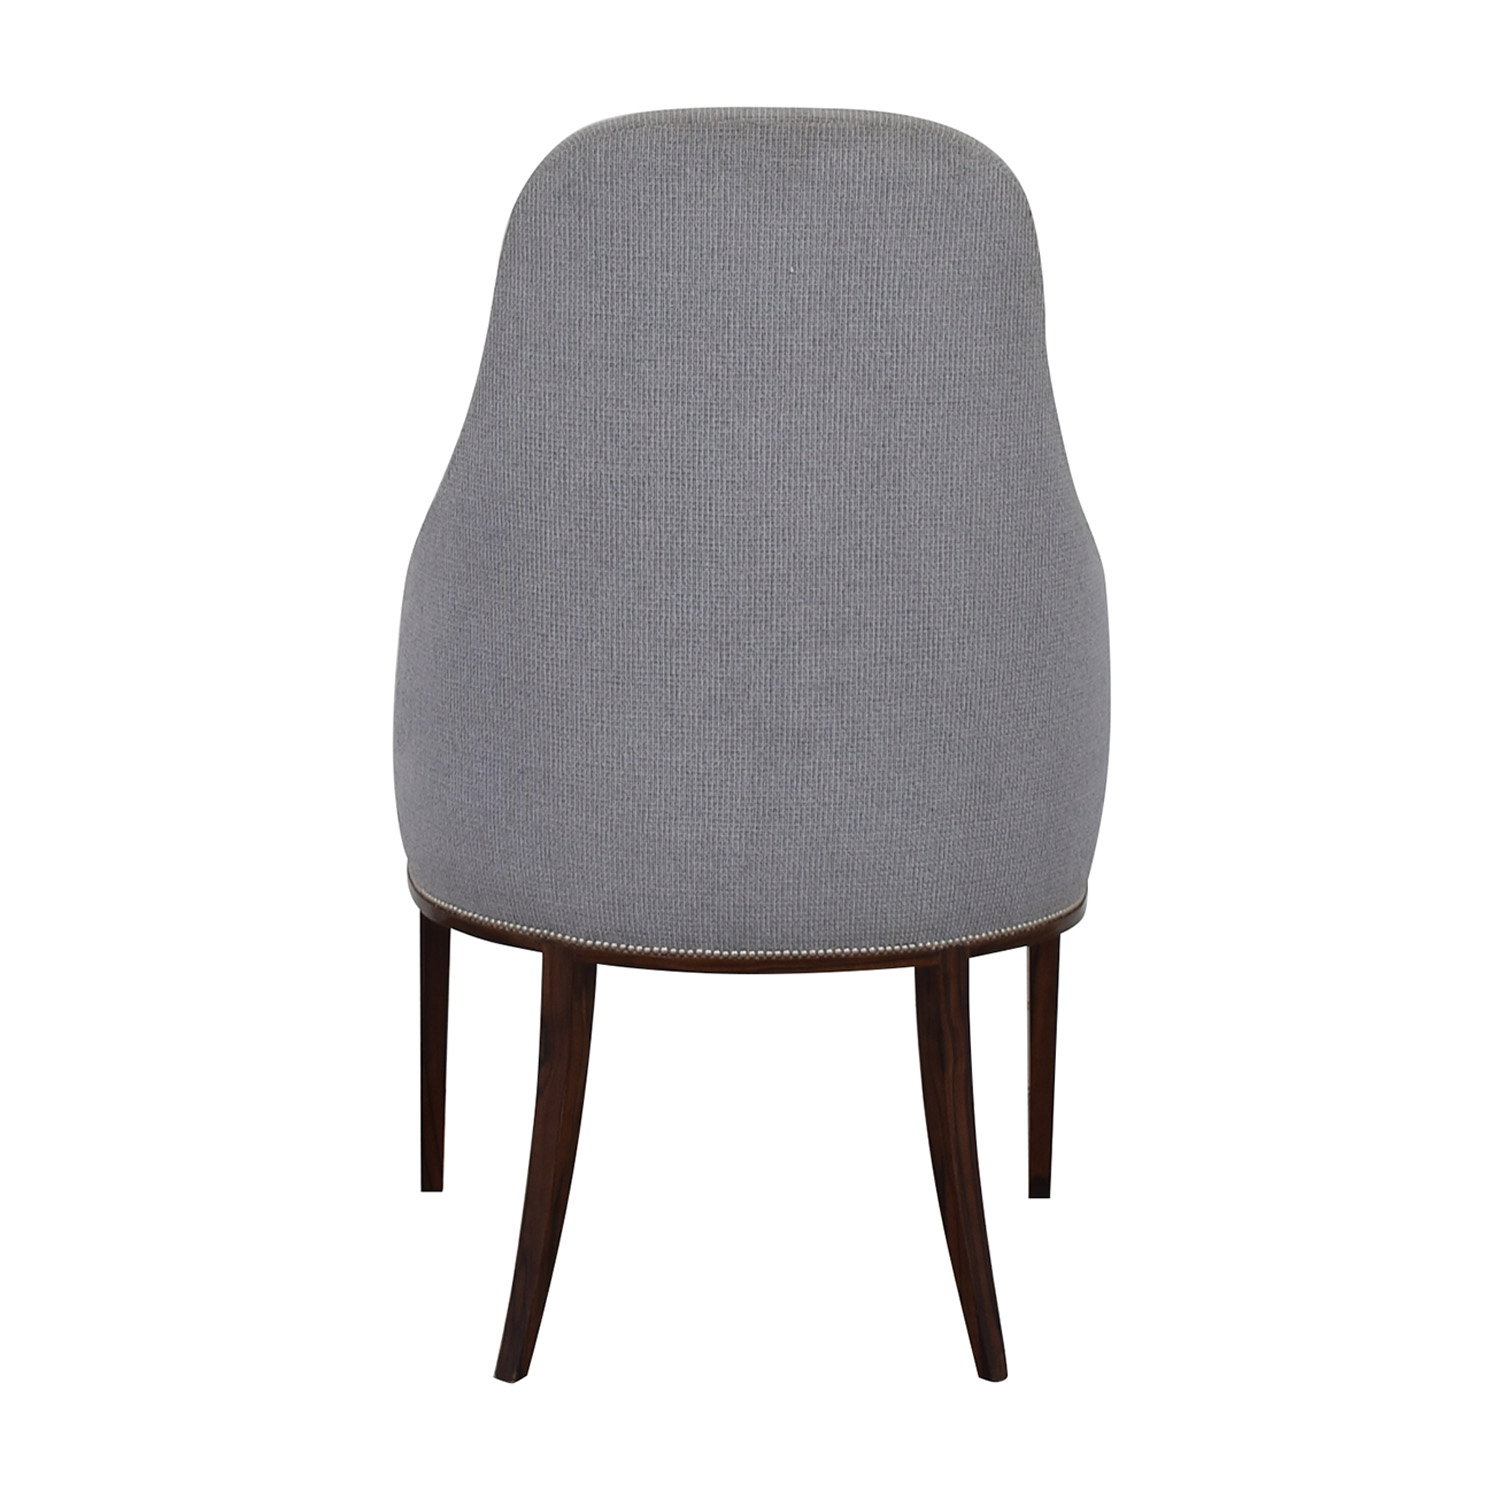 Furniture Masters Furniture Masters Light Blue Upholstered Chair nyc